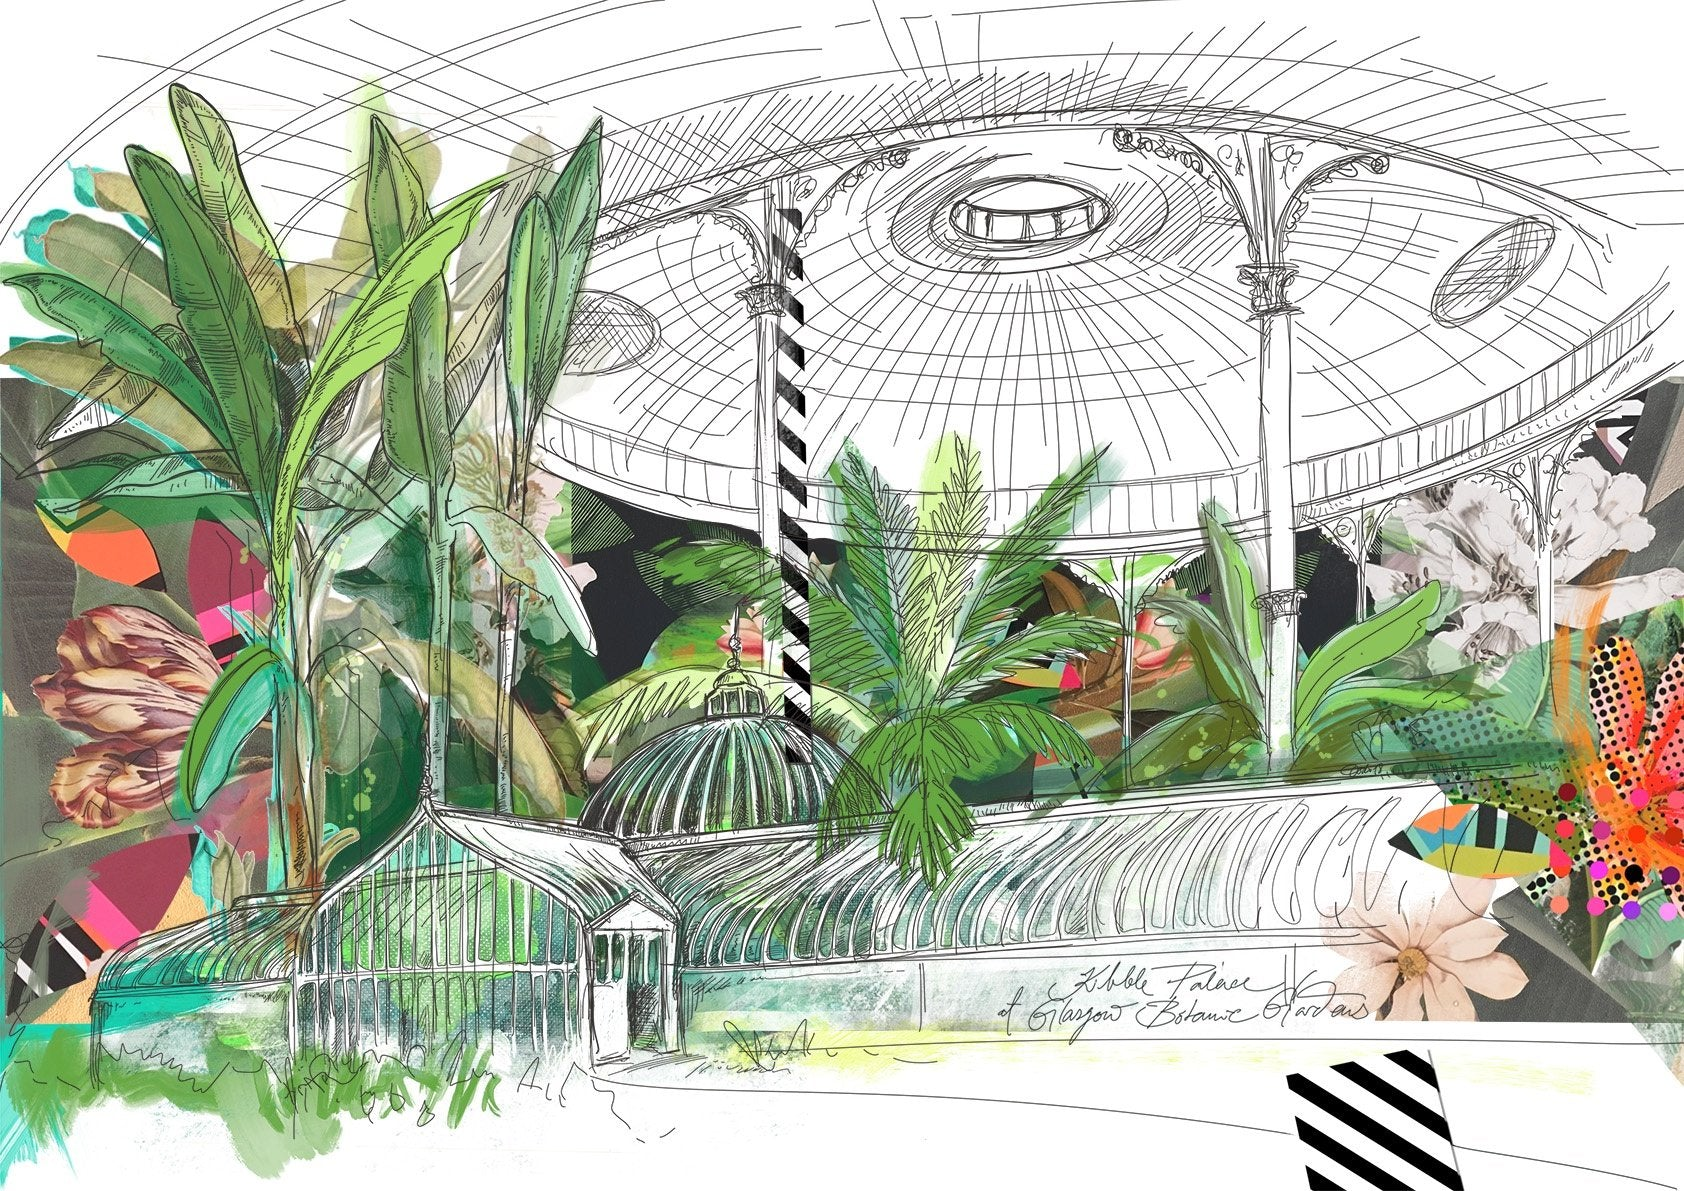 Kibble Palace of Glasgow Botanic Gardens A4 Print